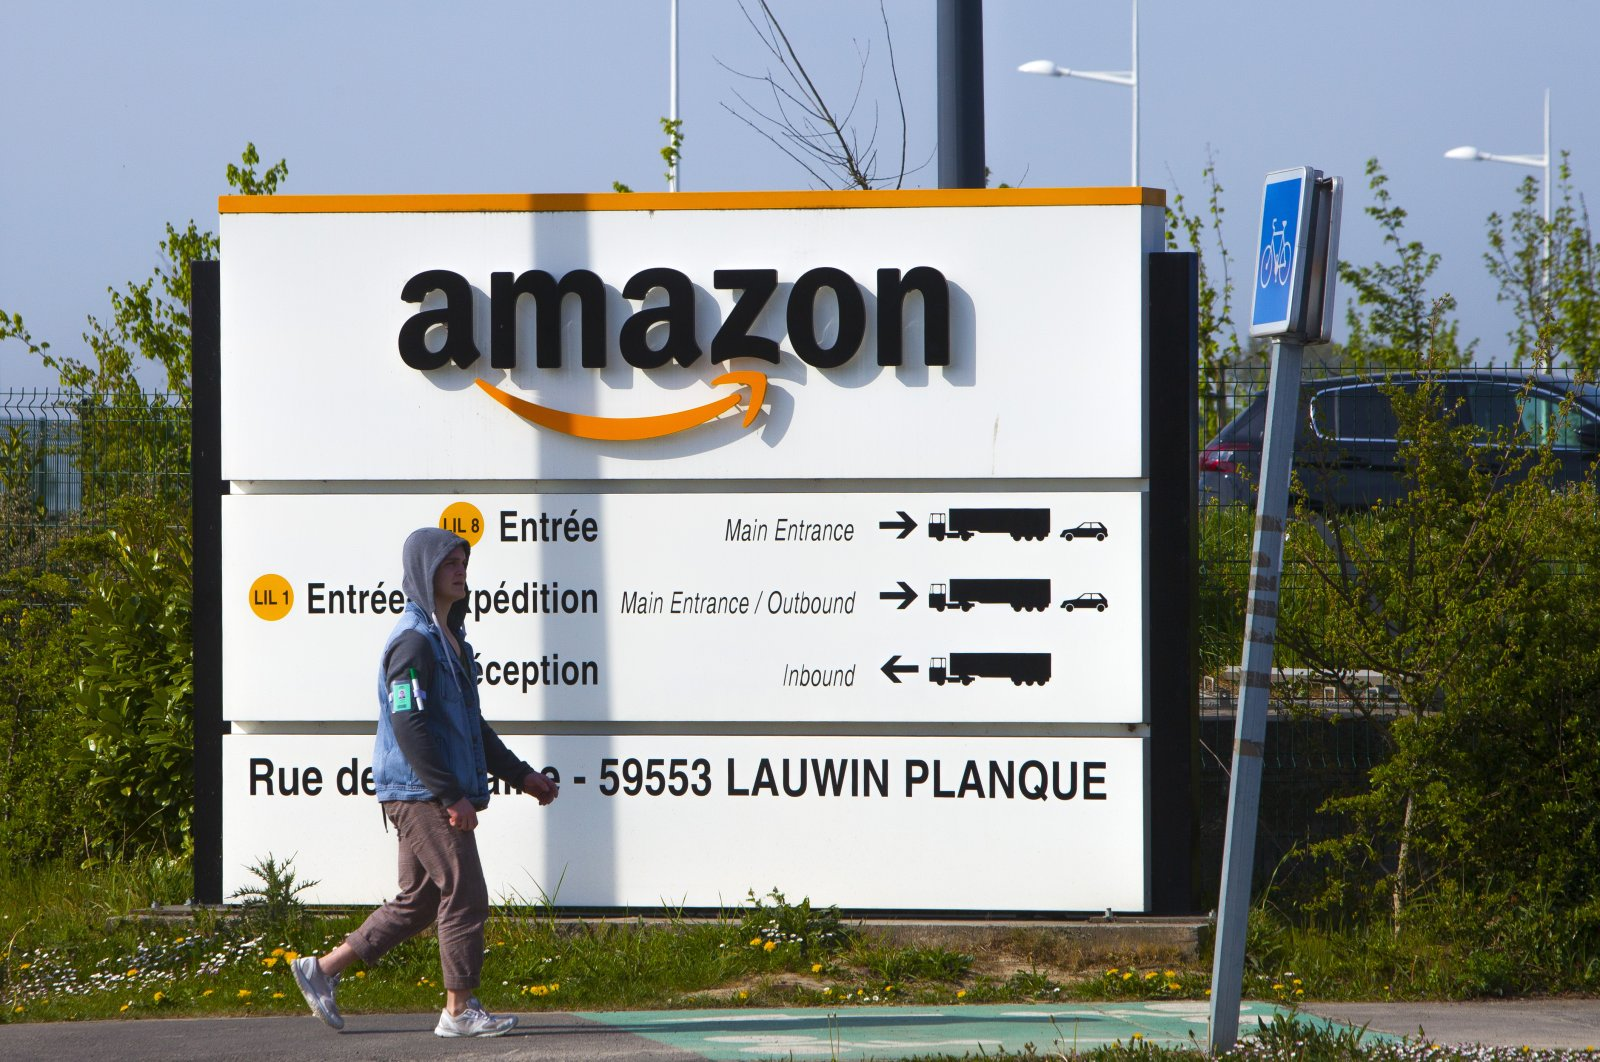 A man walks at the entrance of Amazon, in Douai, northern France, April 16, 2020. (AP Photo)